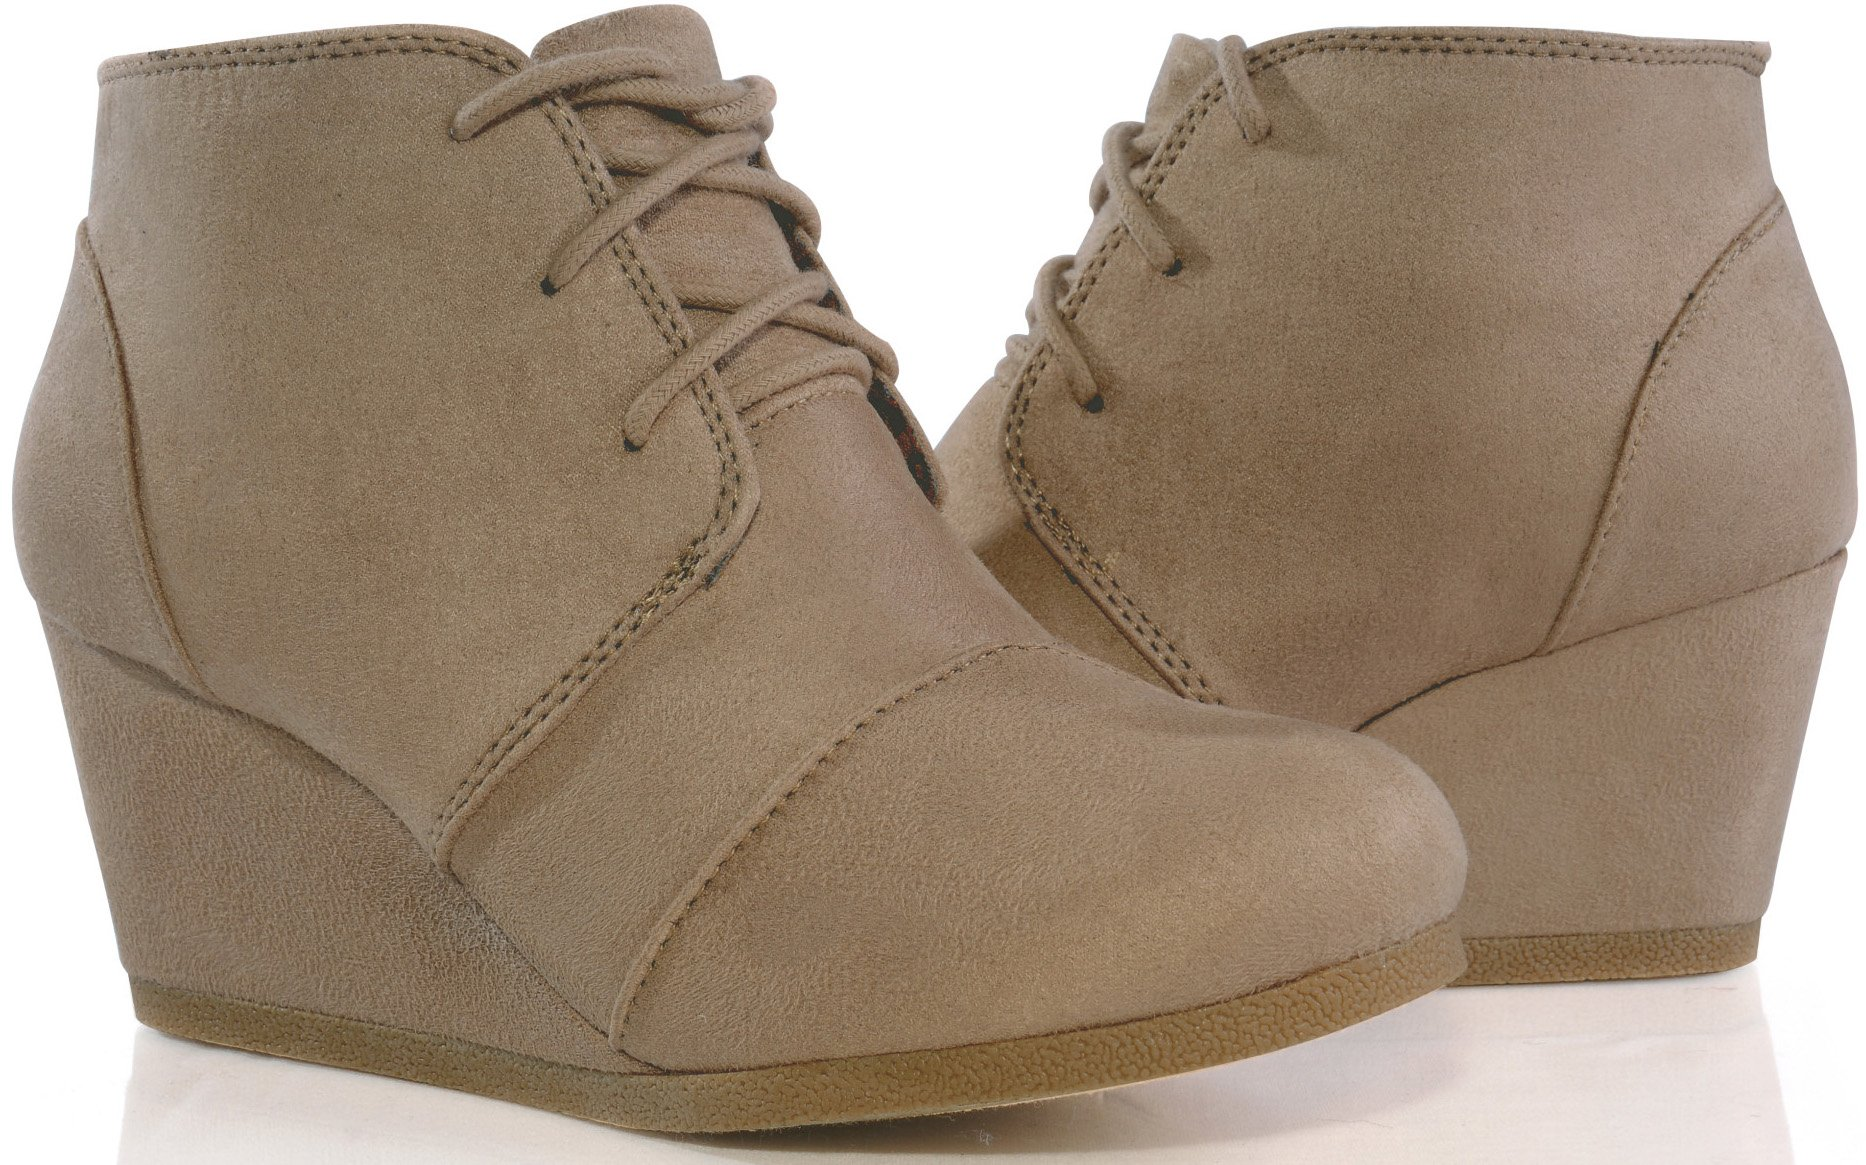 MARCOREPUBLIC Galaxy Womens Wedge Boots - (Taupe) - 10 by MARCOREPUBLIC (Image #7)